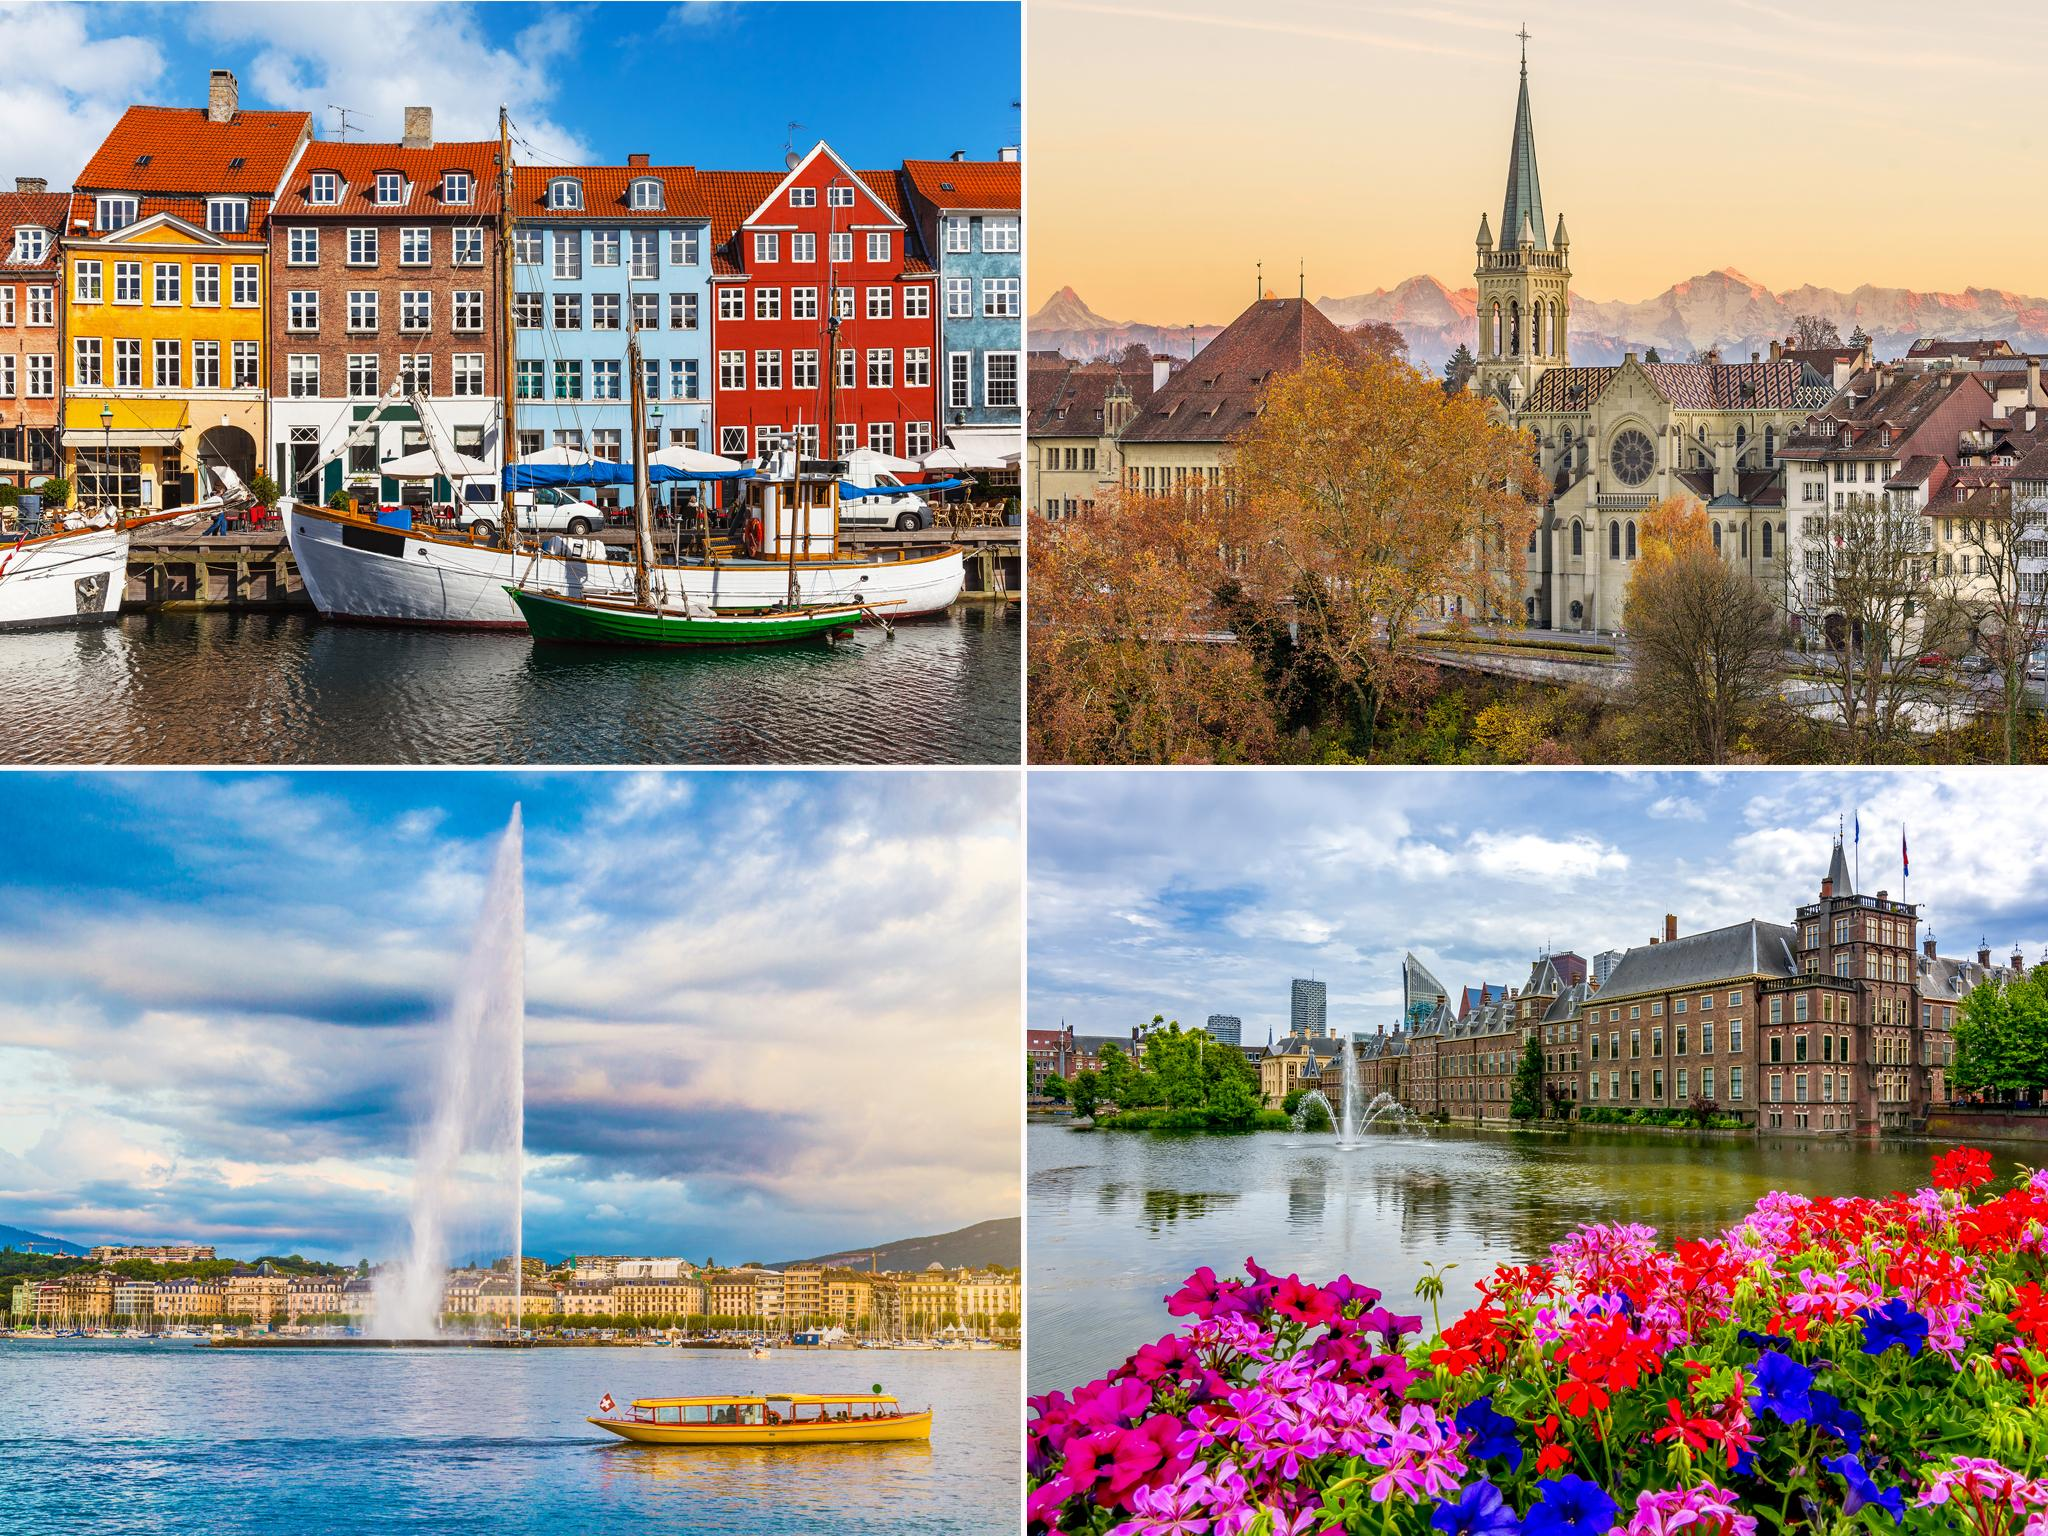 Europe's most liveable cities, according to experts